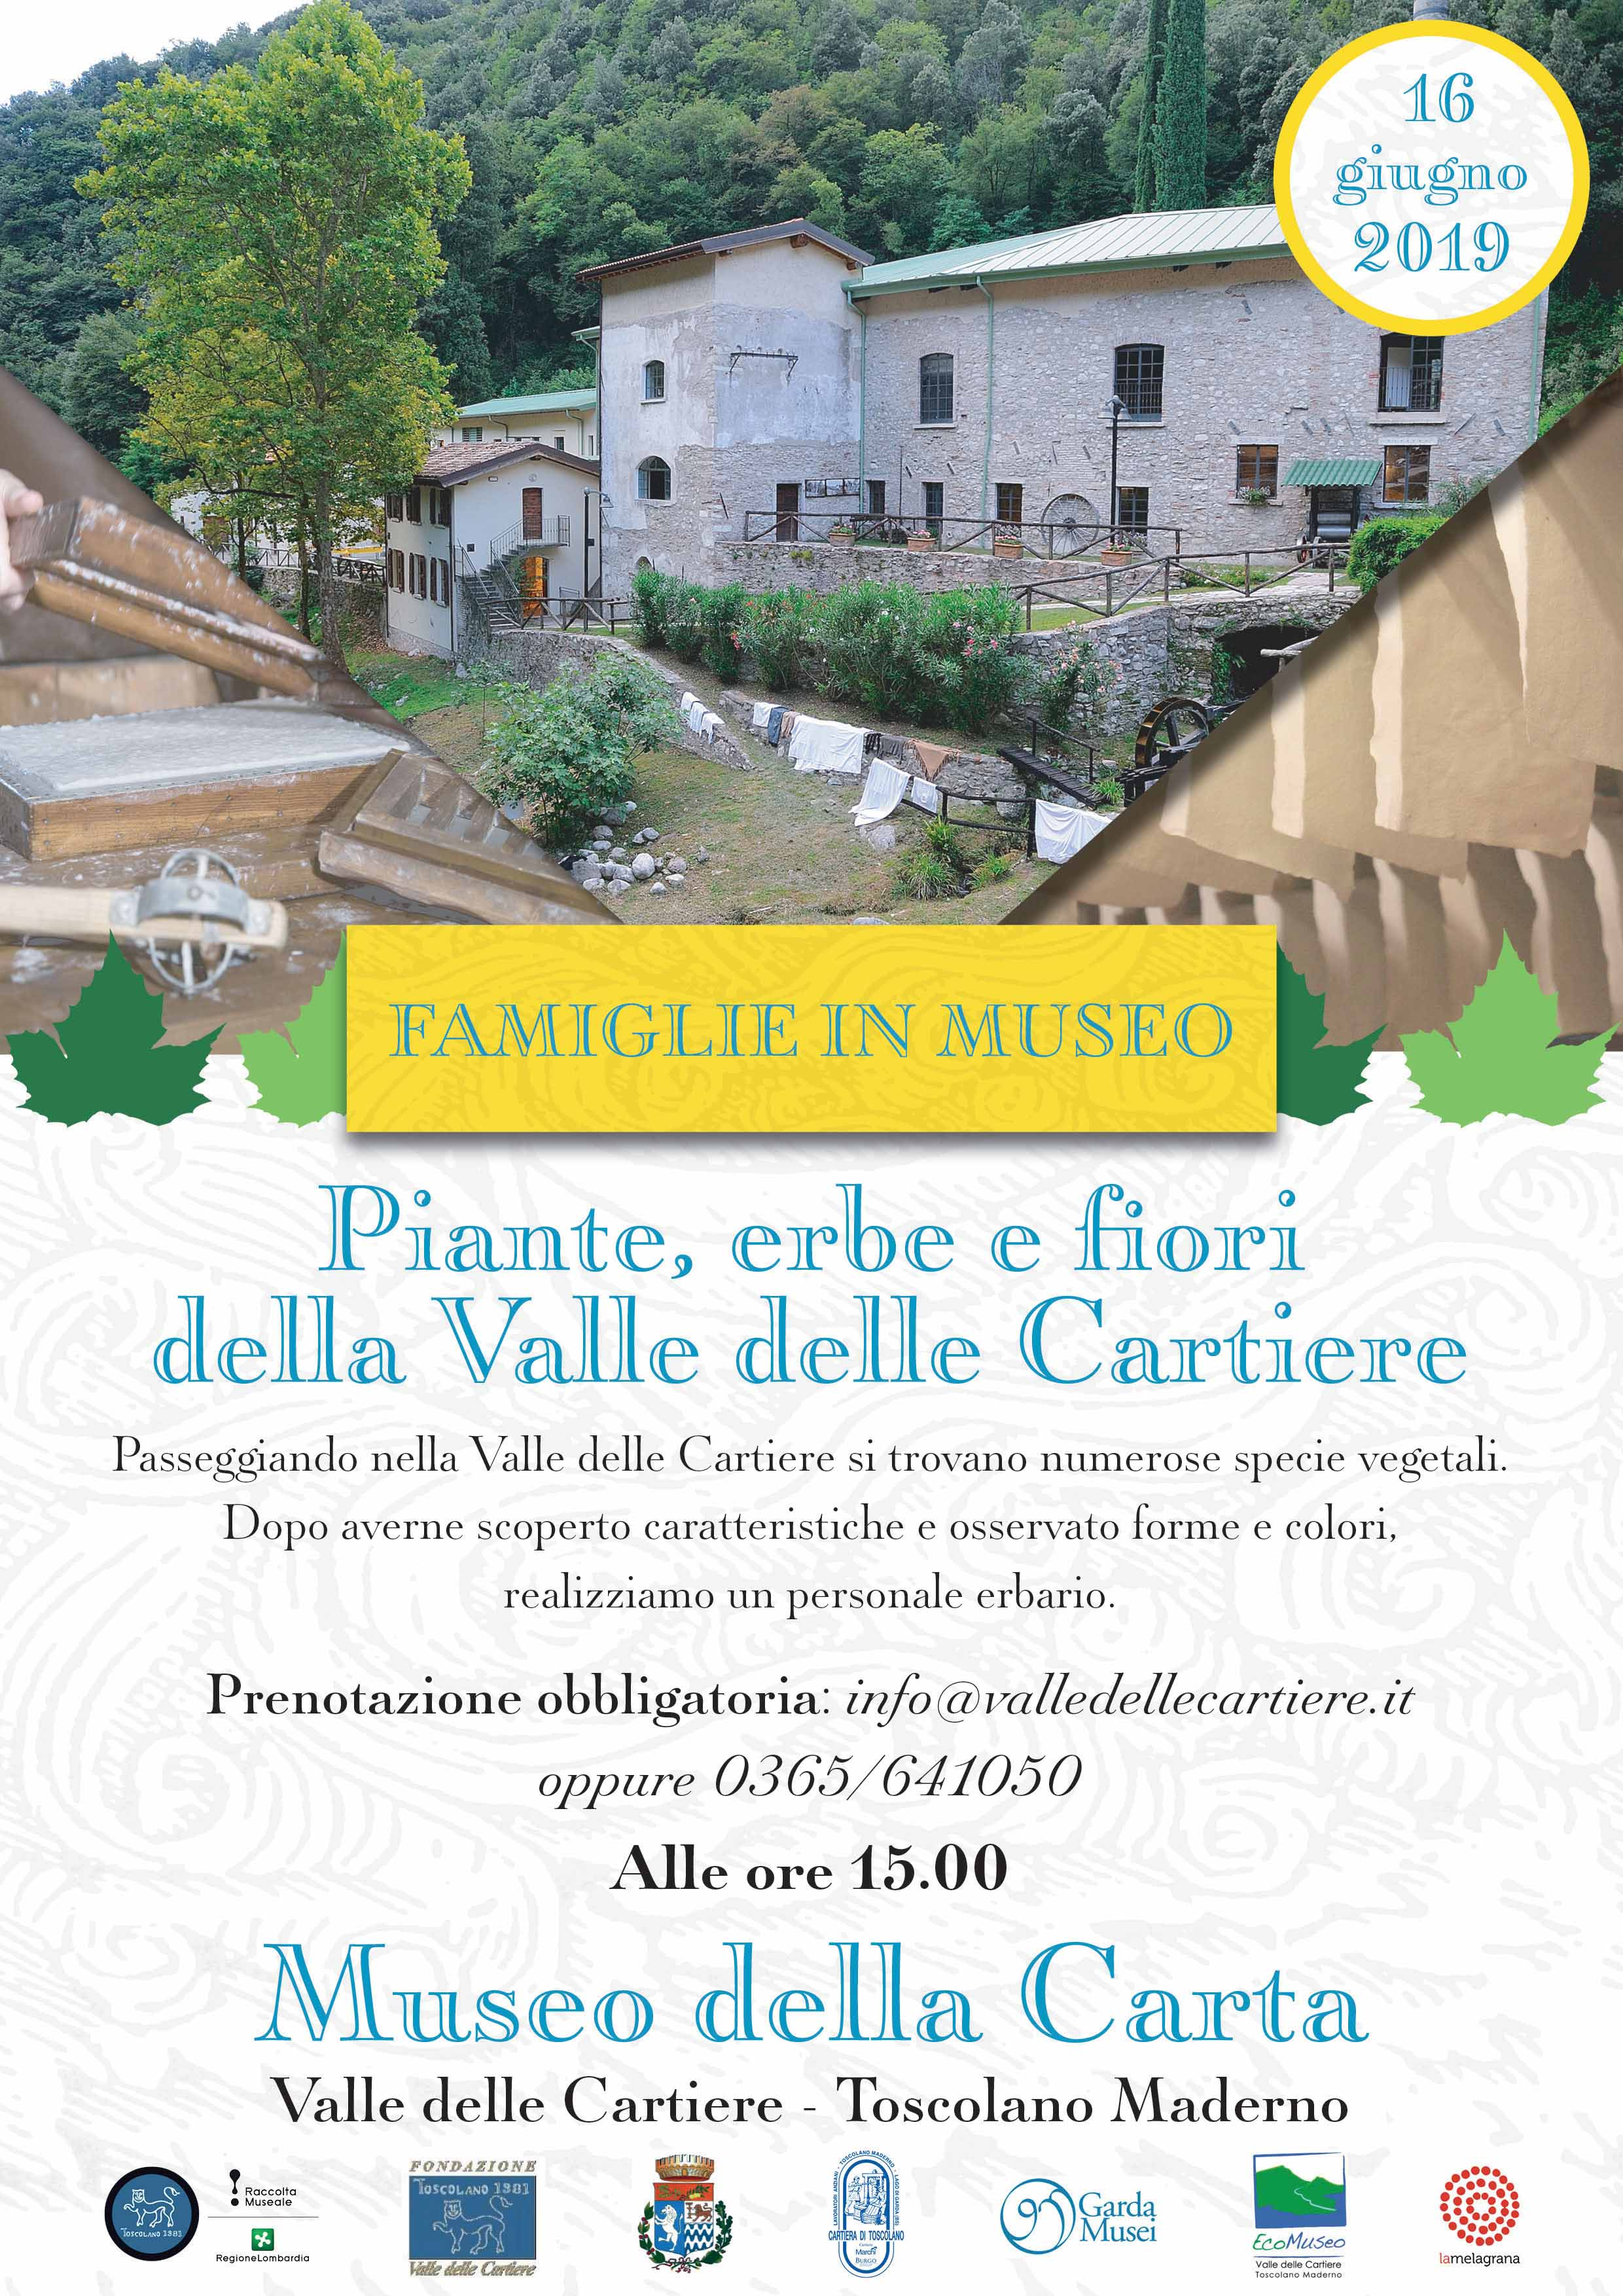 Image result for fondazione valle delle cartiere images